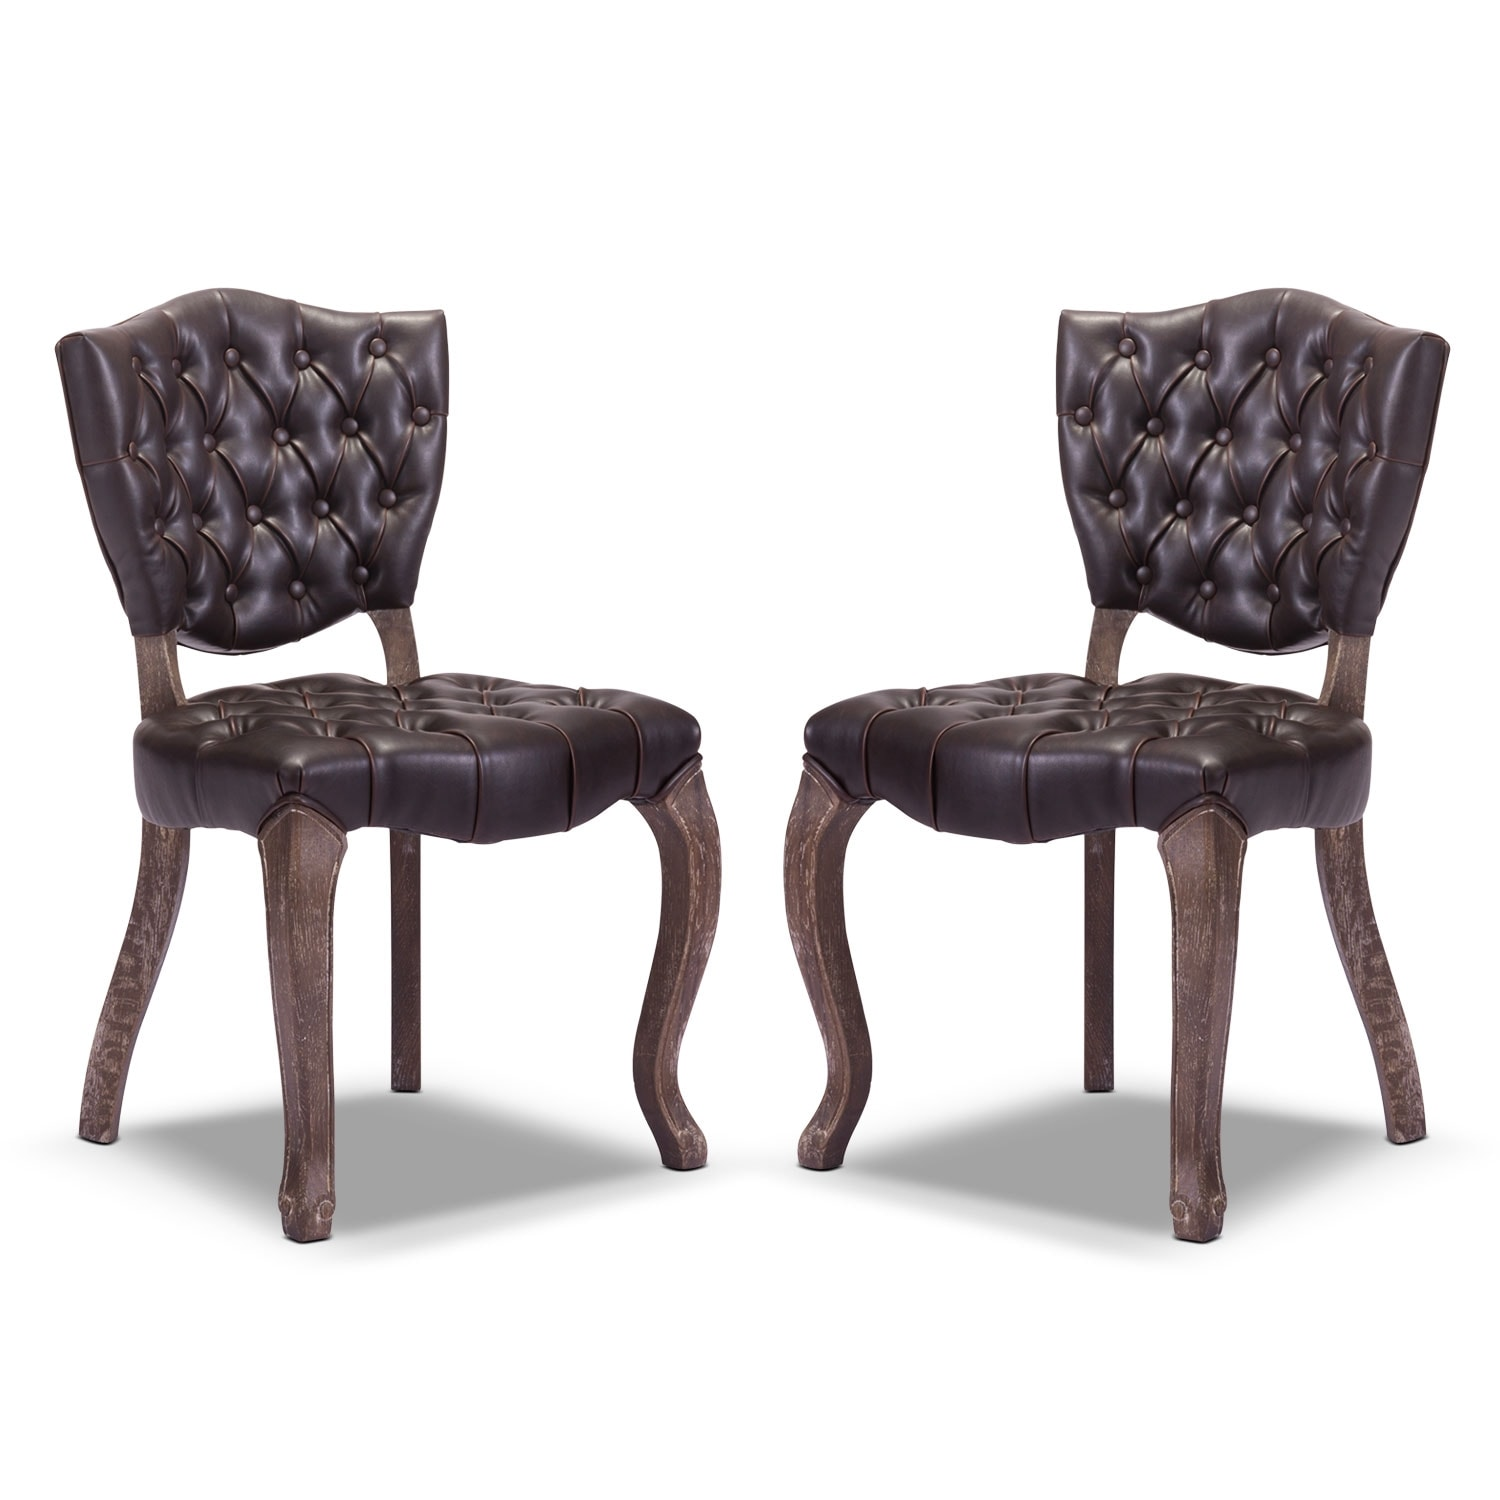 Shield 2-Pack Chairs